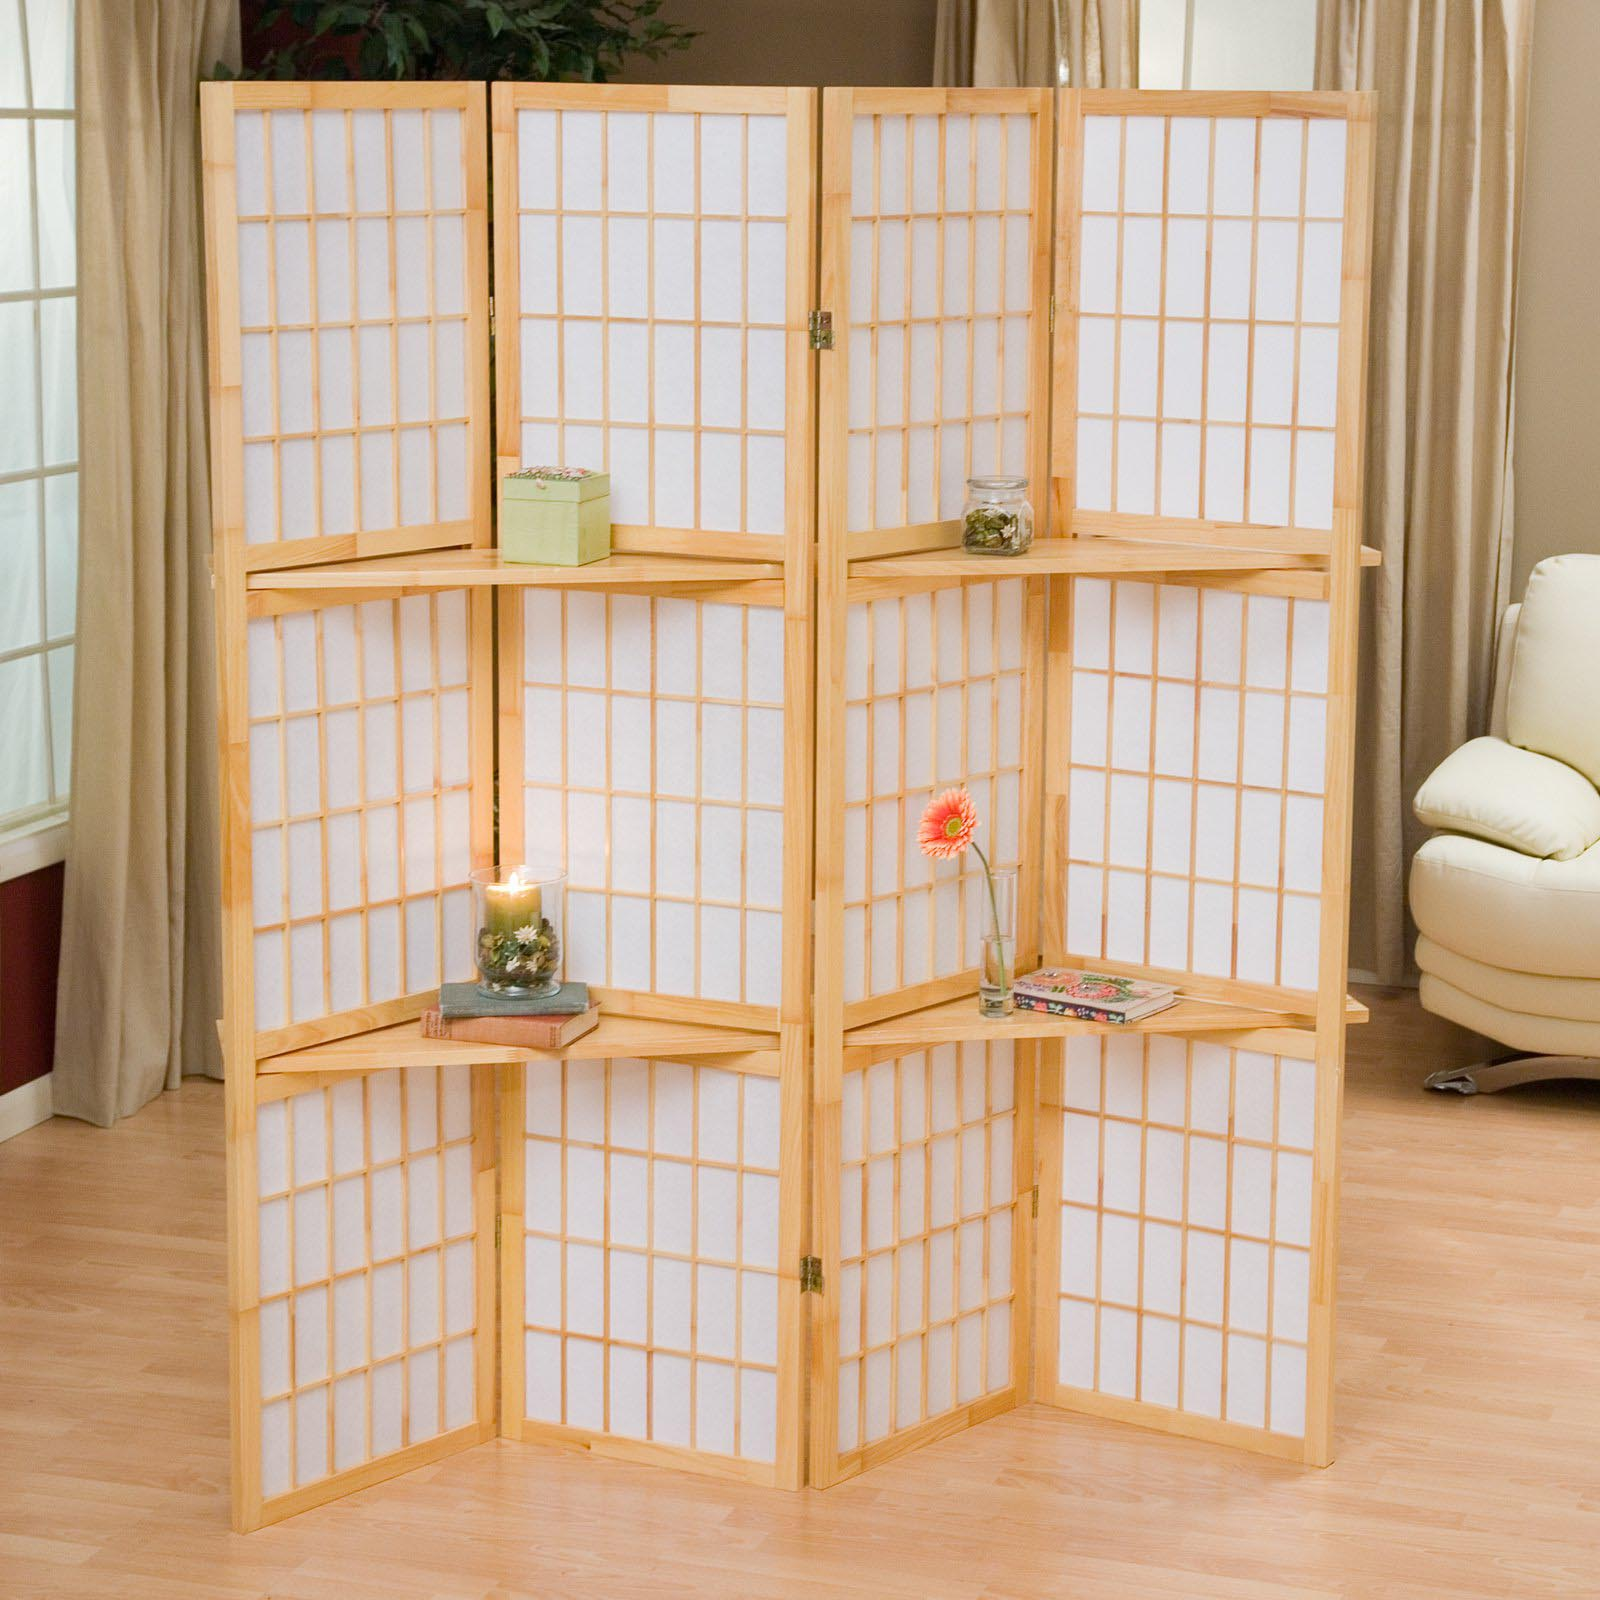 Room Divider Screens Furniture Screens Room Dividers Best Decor Things